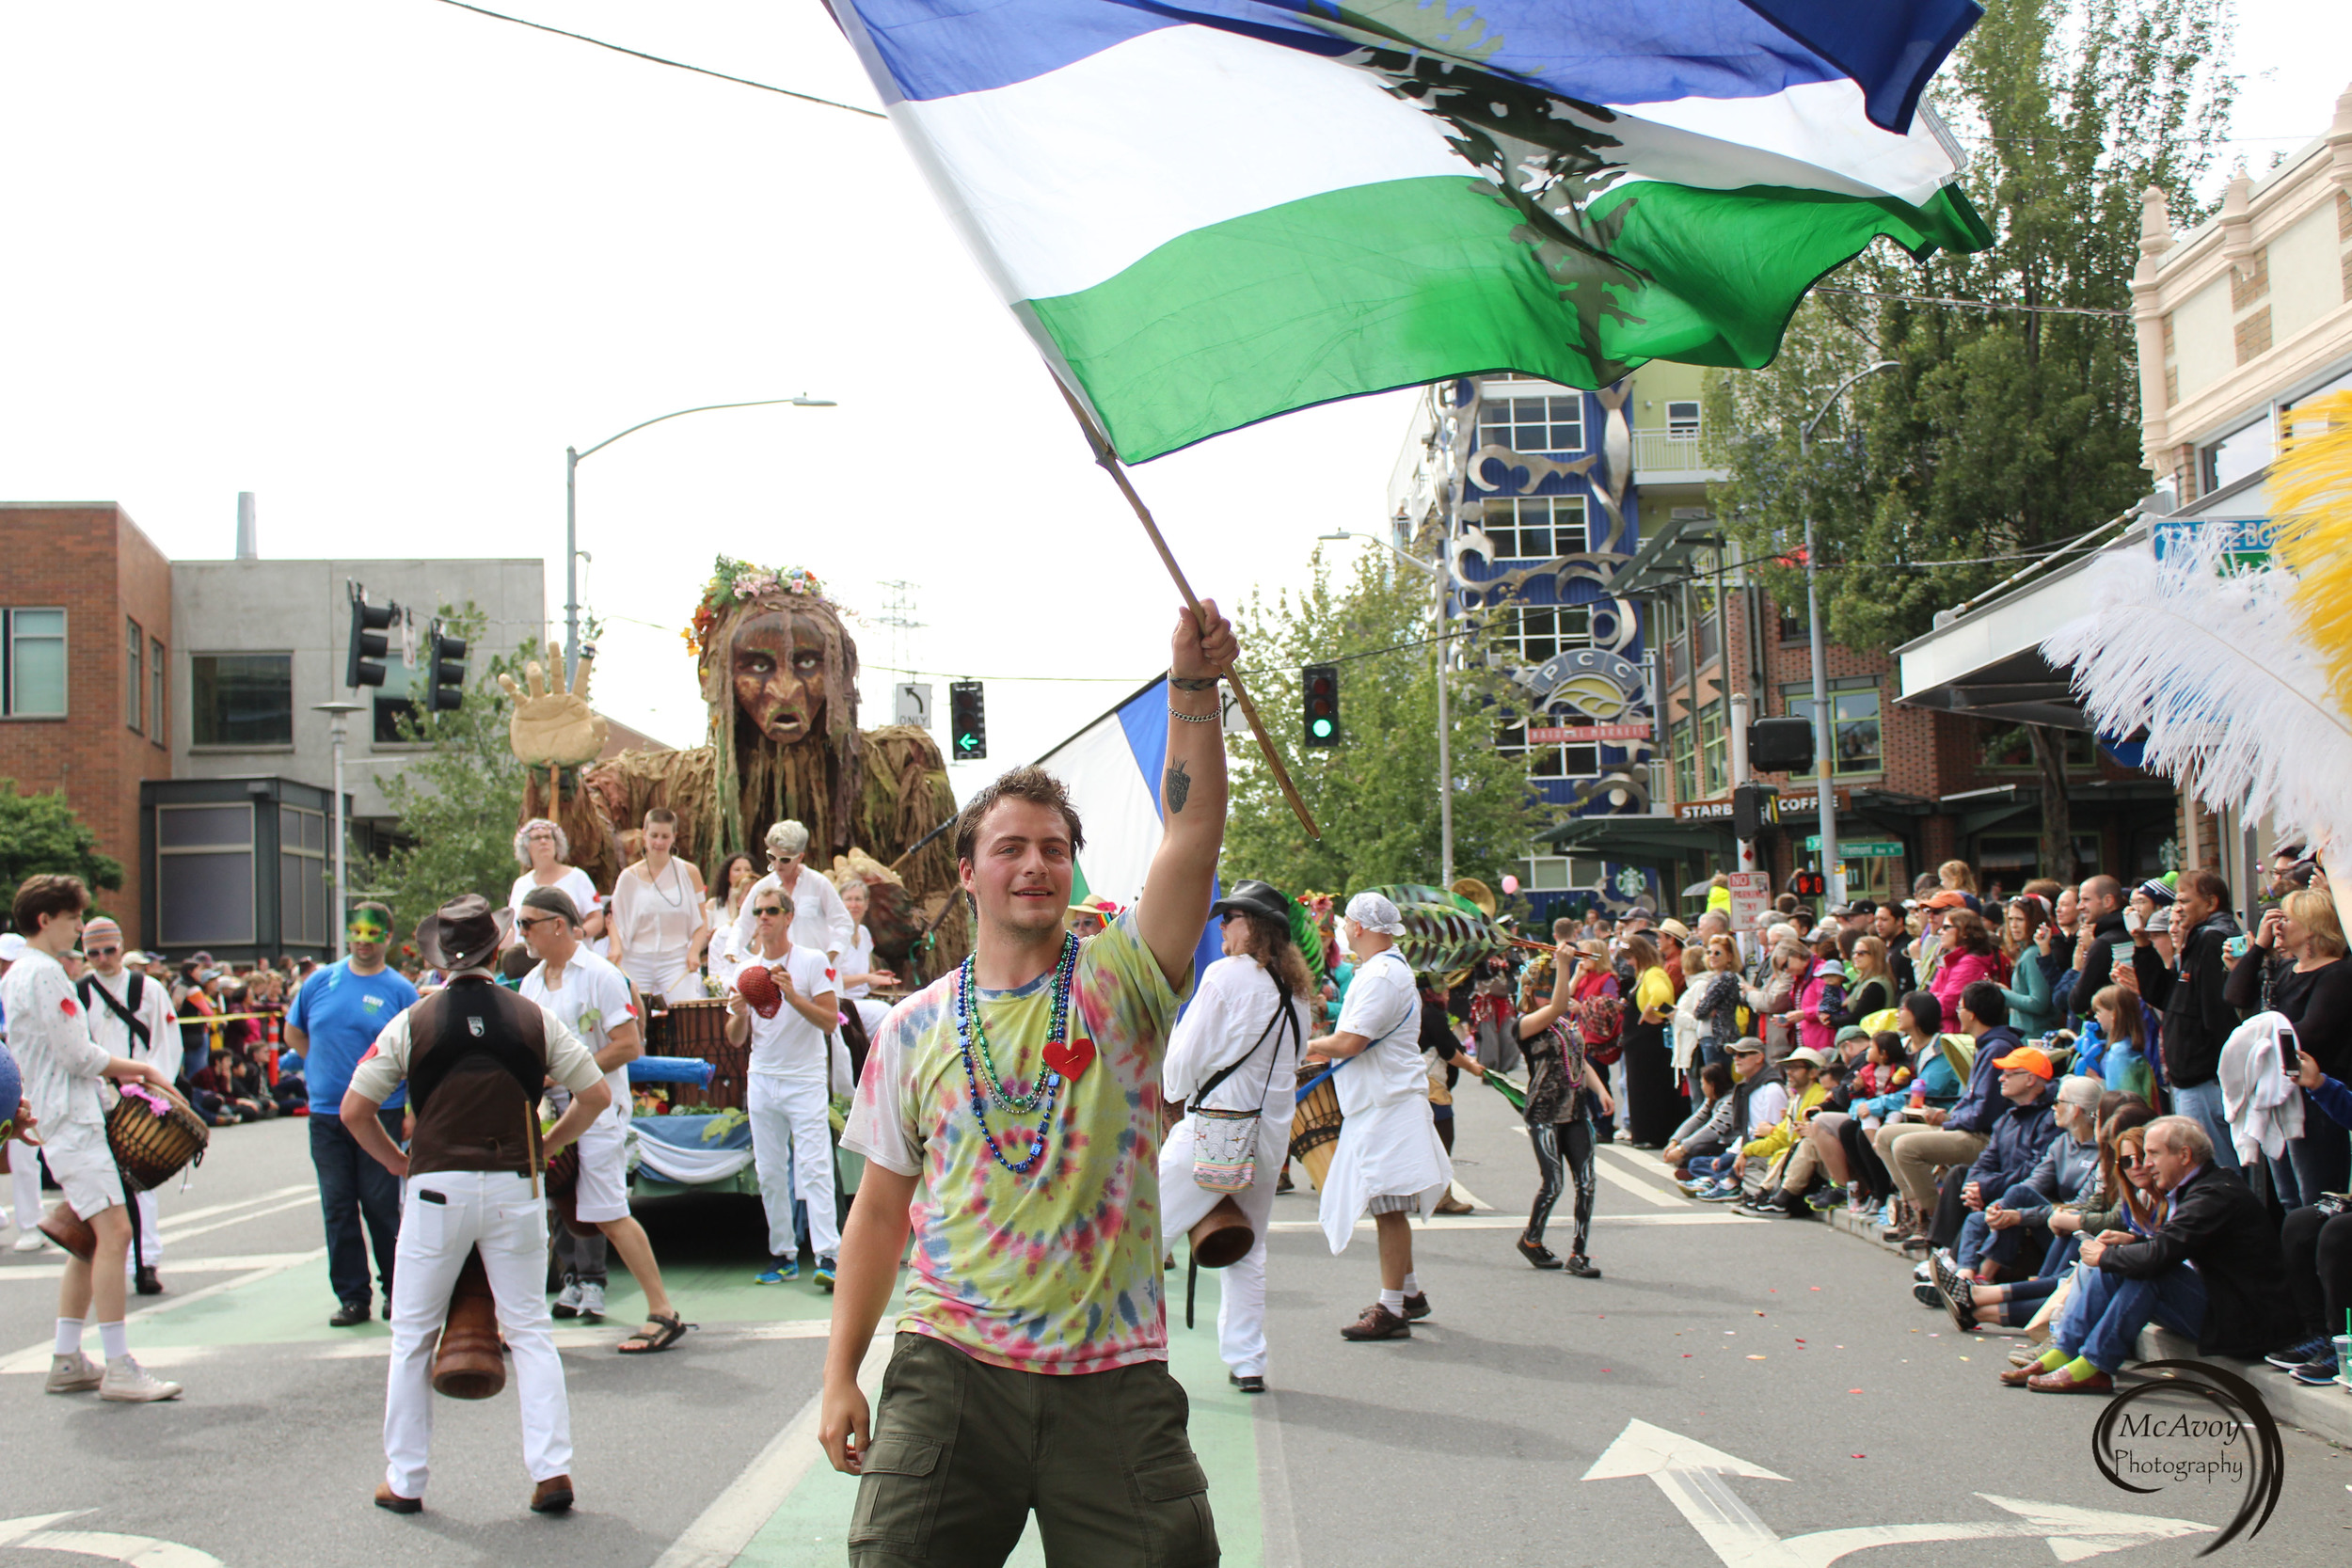 Local artist Danny Lange volunteered with us to be our proud Cascadia flag runner.